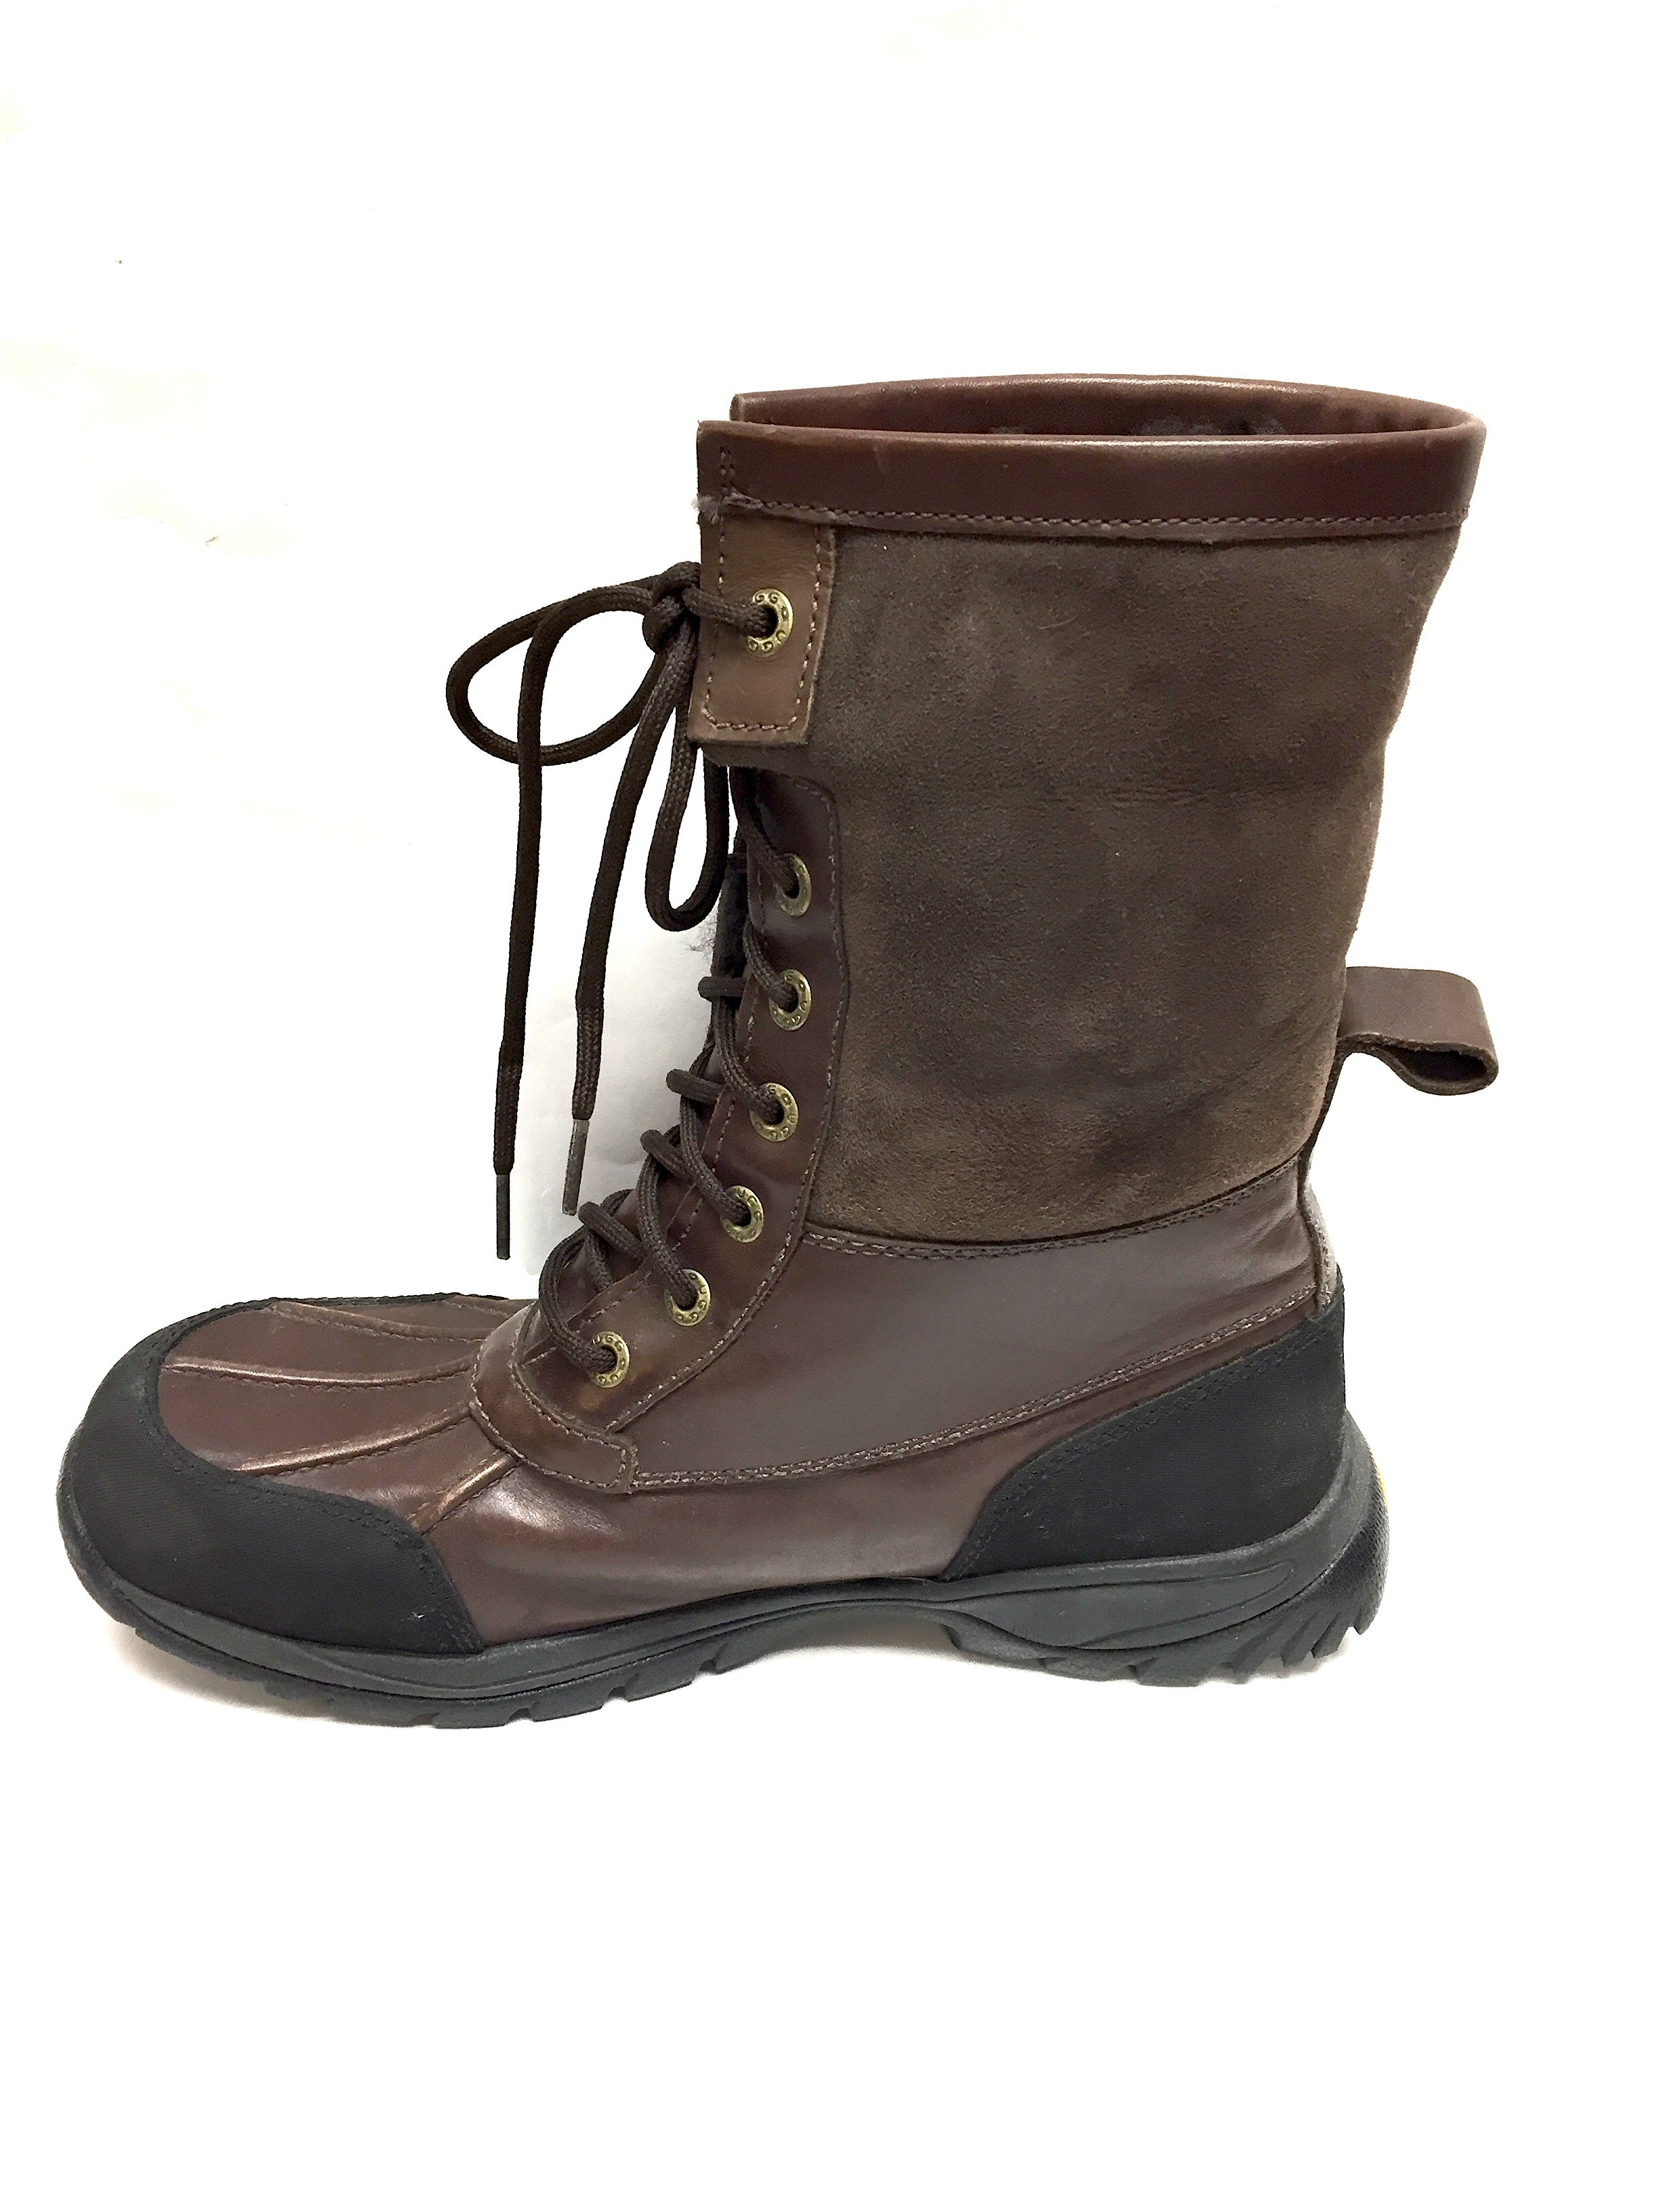 f1ded742e7d UGG AUSTRALIA Brown Leather Lace-Up Winter Boots with Sheepskin Fur Cuffs &  Rubber Soles Size: US 8 Description: